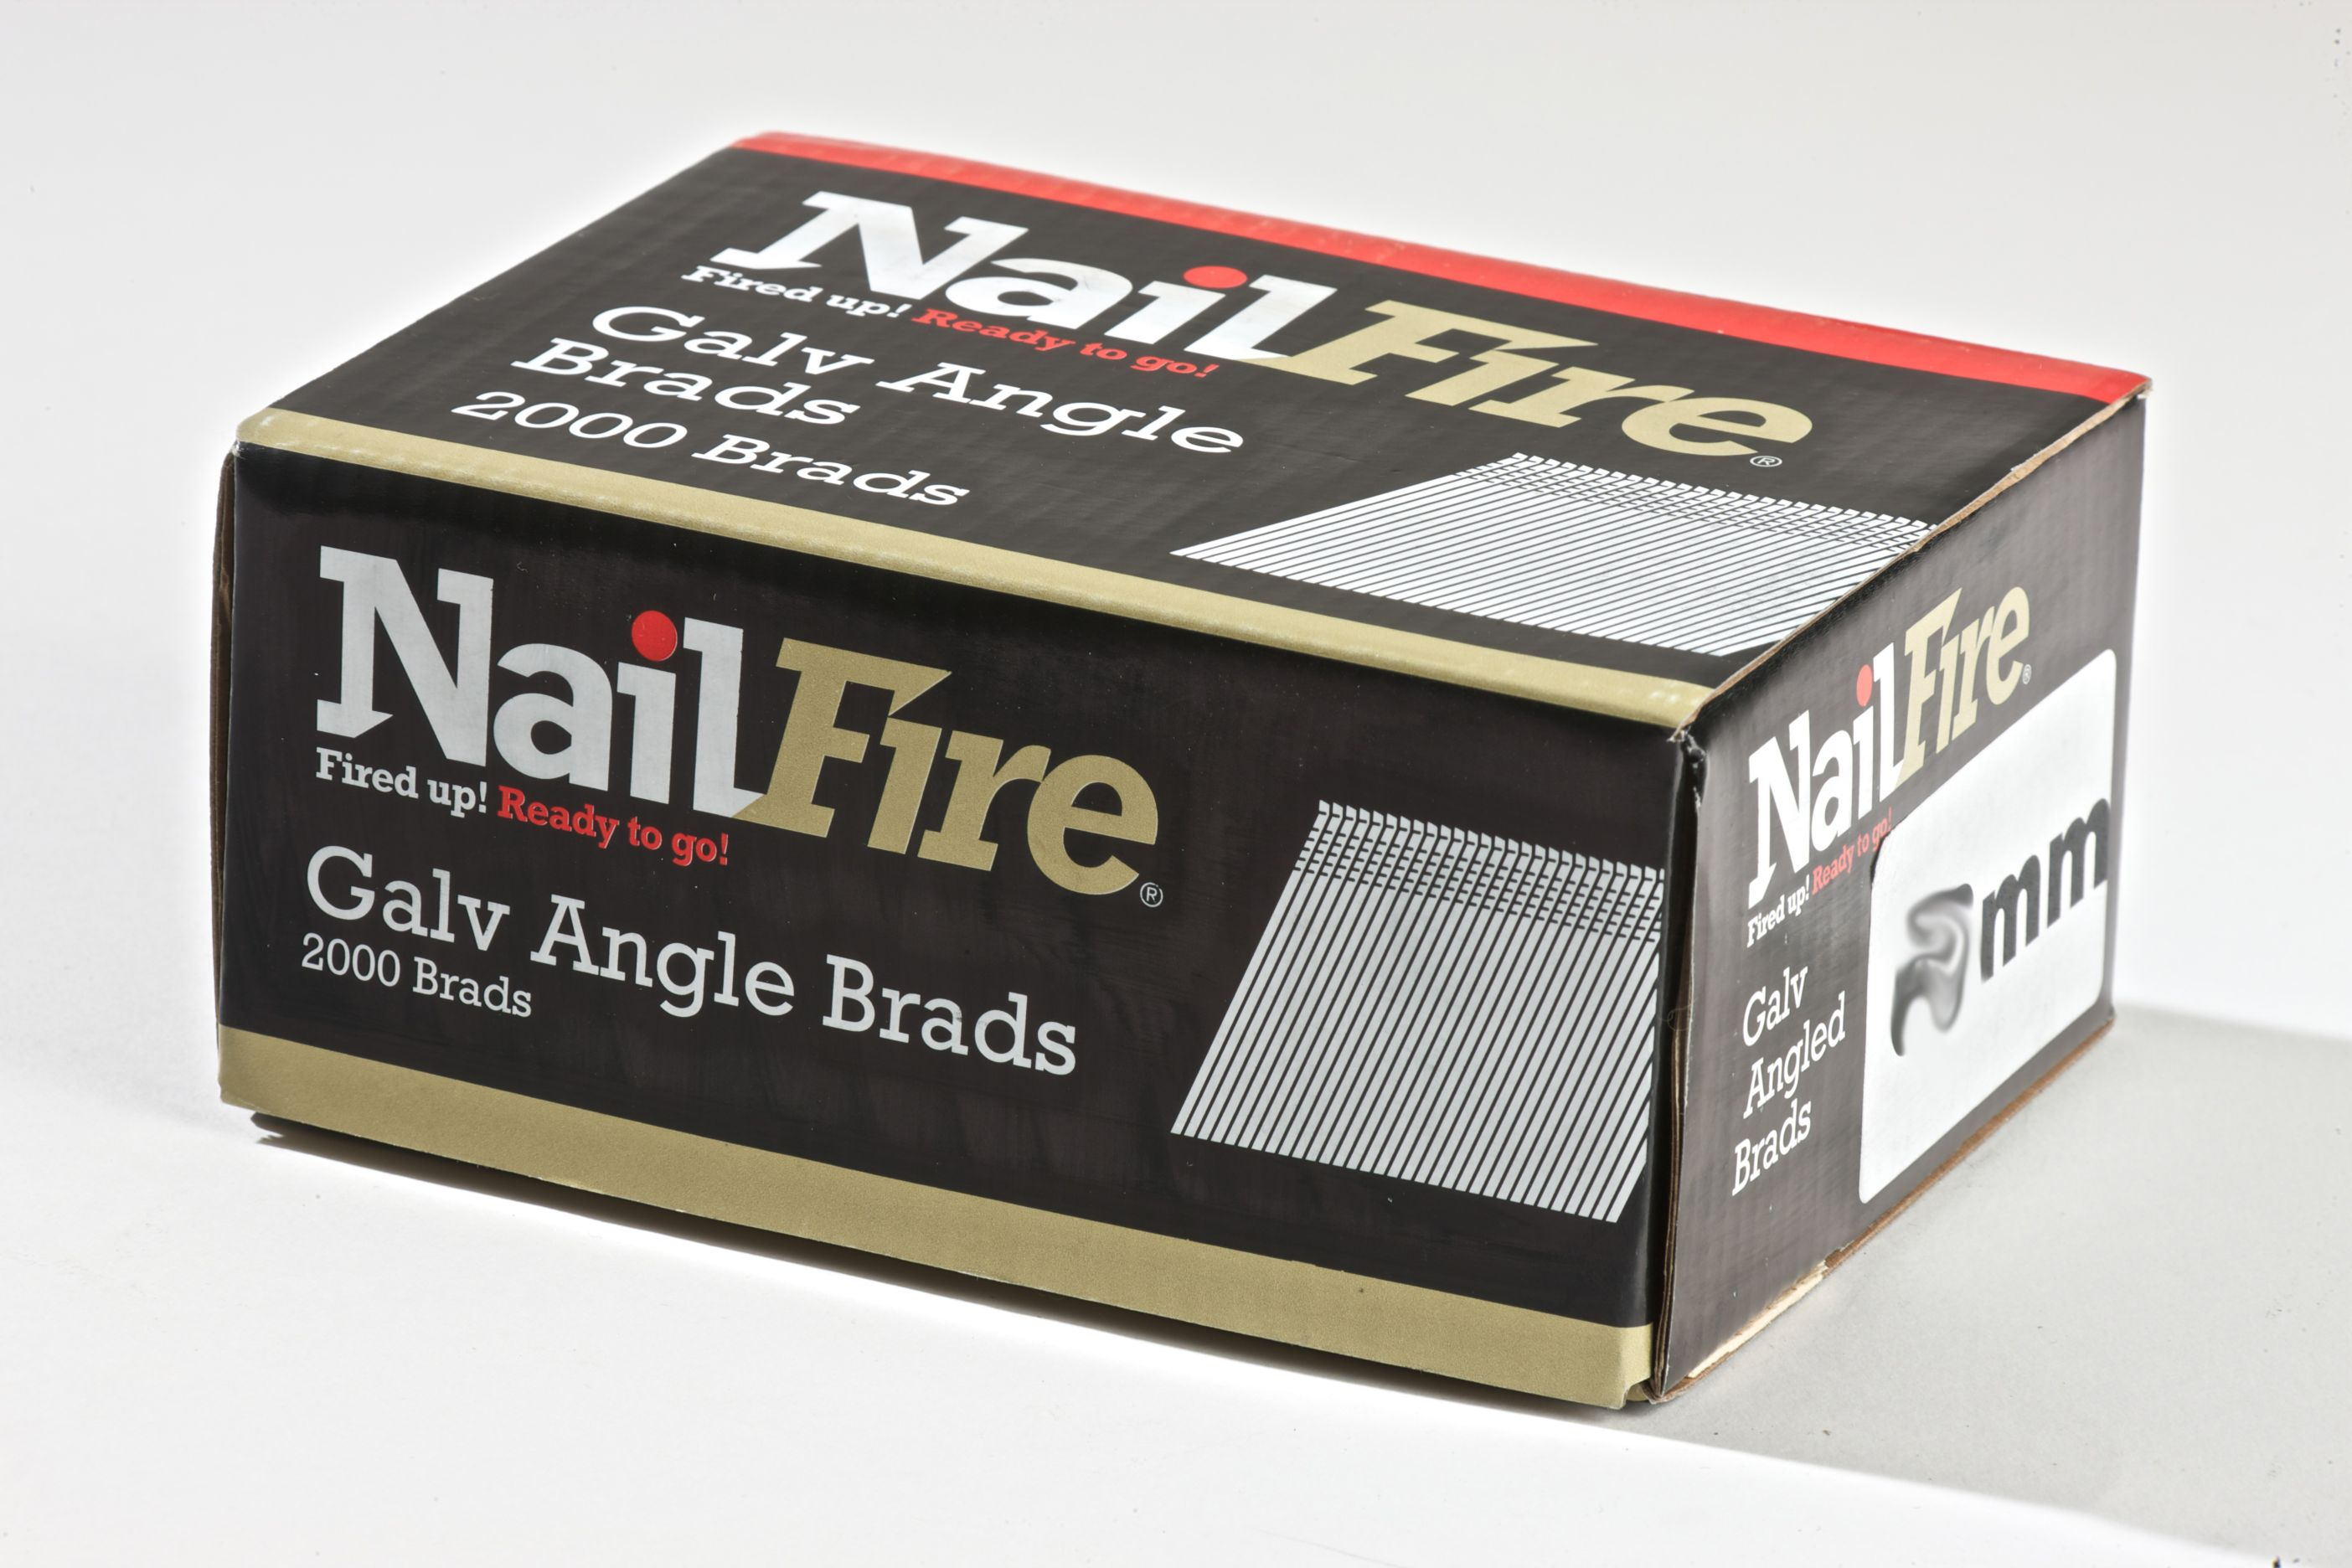 NAILFIRE 2ND FIX ANGLED E-GALV BRAD & FUEL PACK 32MM (TUB OF 2000)